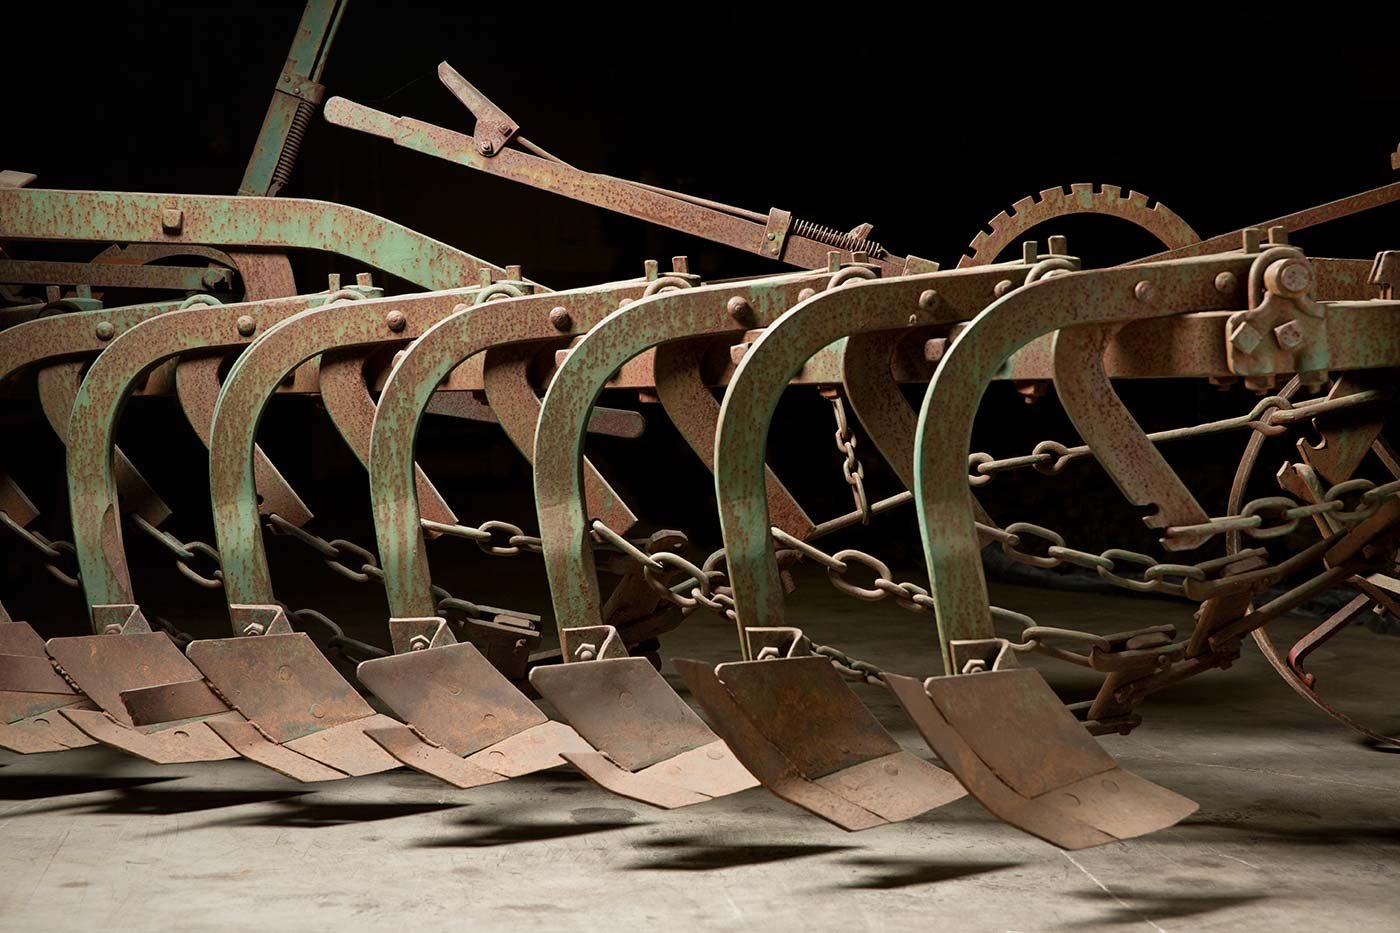 A view of the stump-jump mechanisms and a lever. - click to view larger image